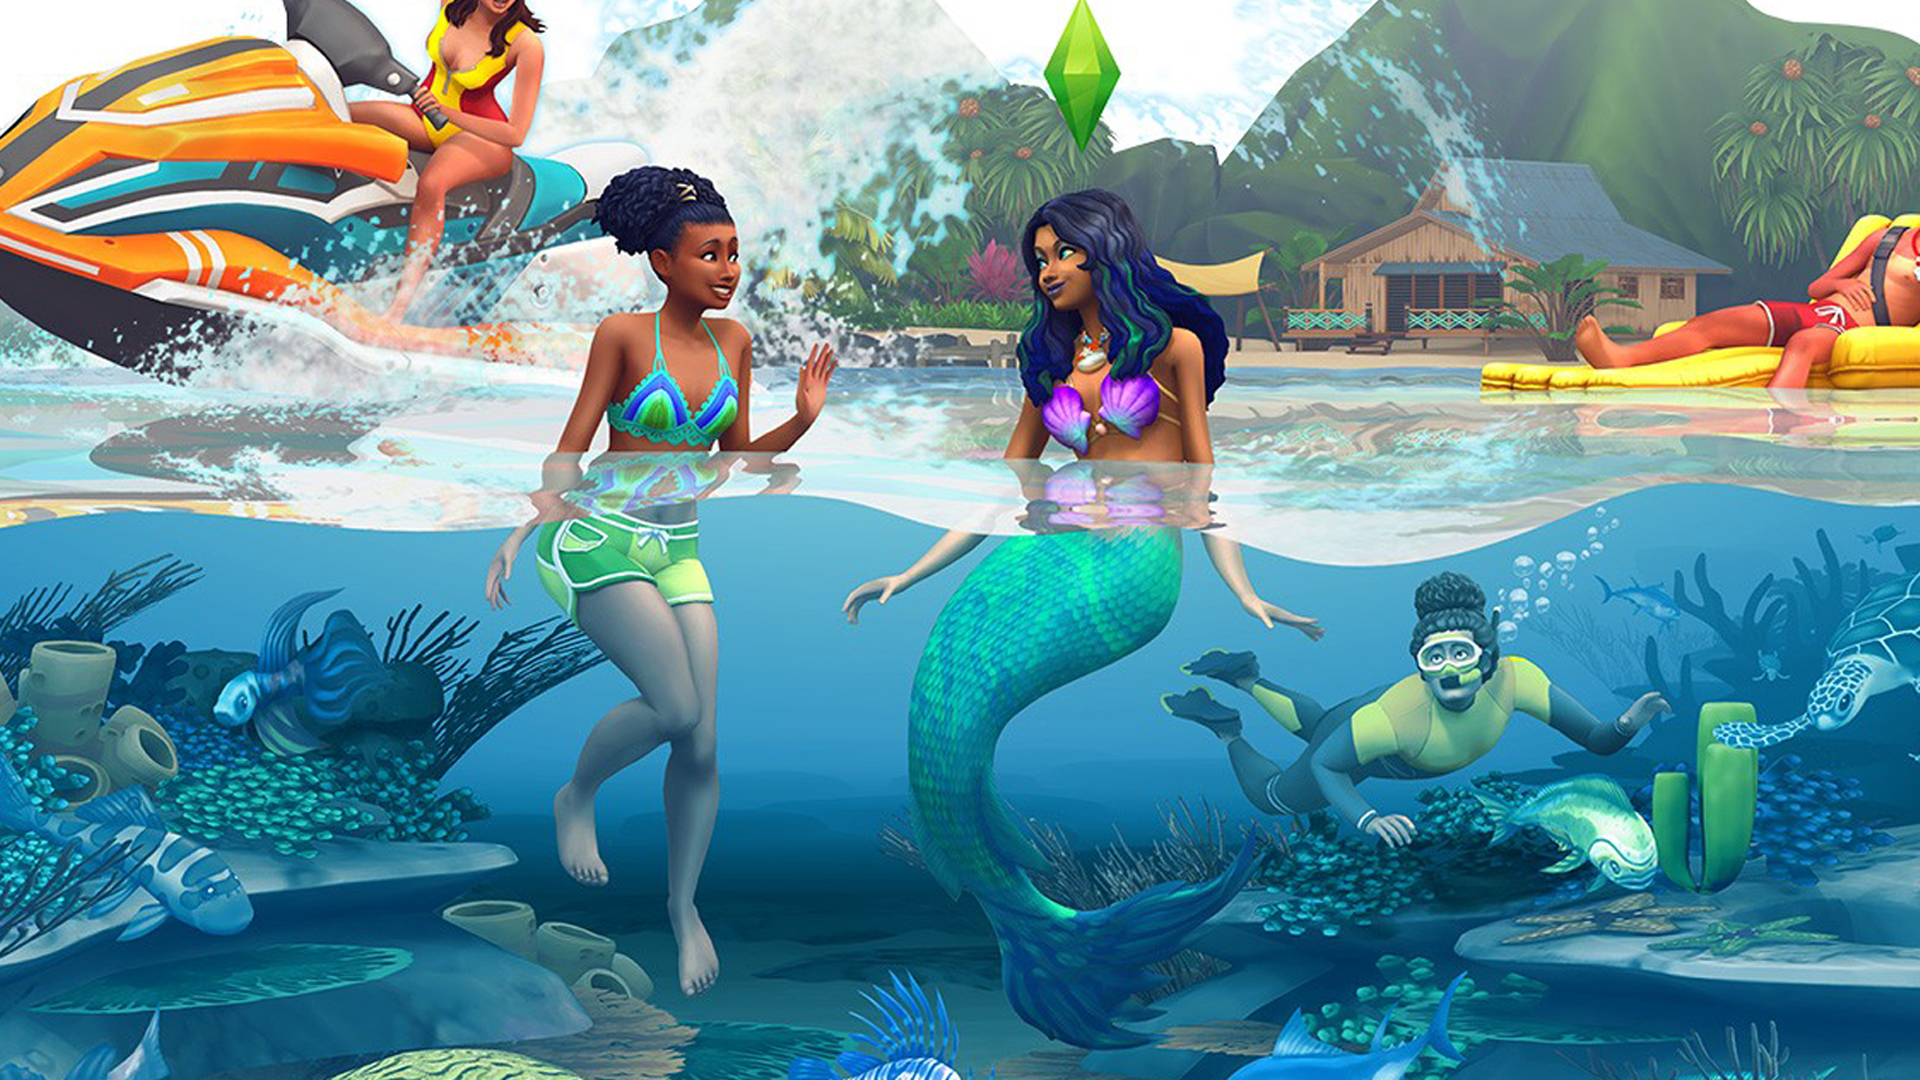 Sims 4 How to Become a Mermaid